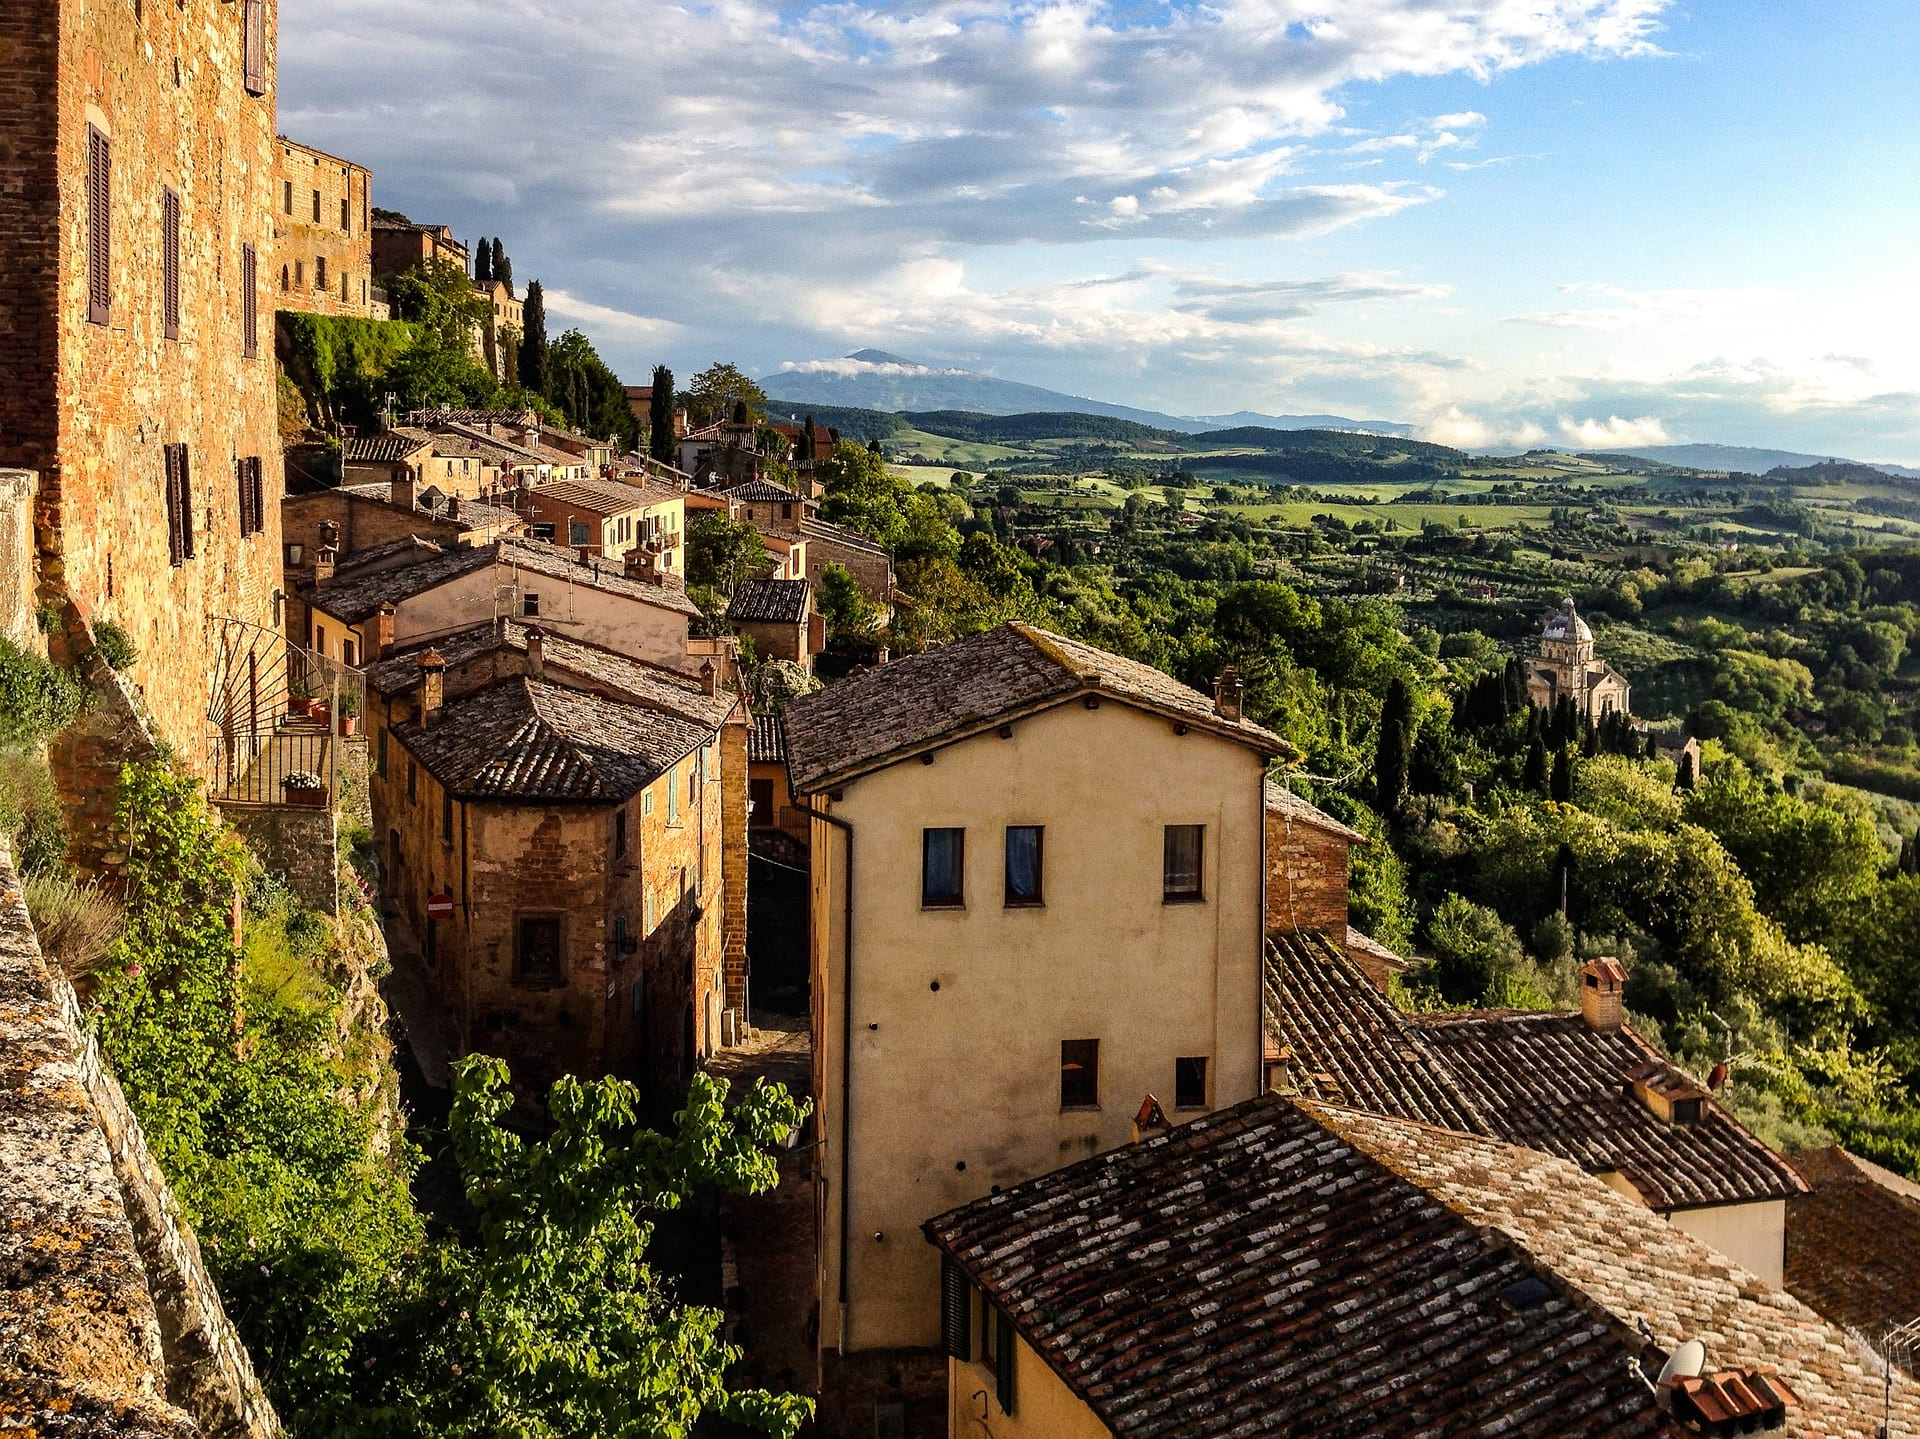 TOSCANA village and country side image